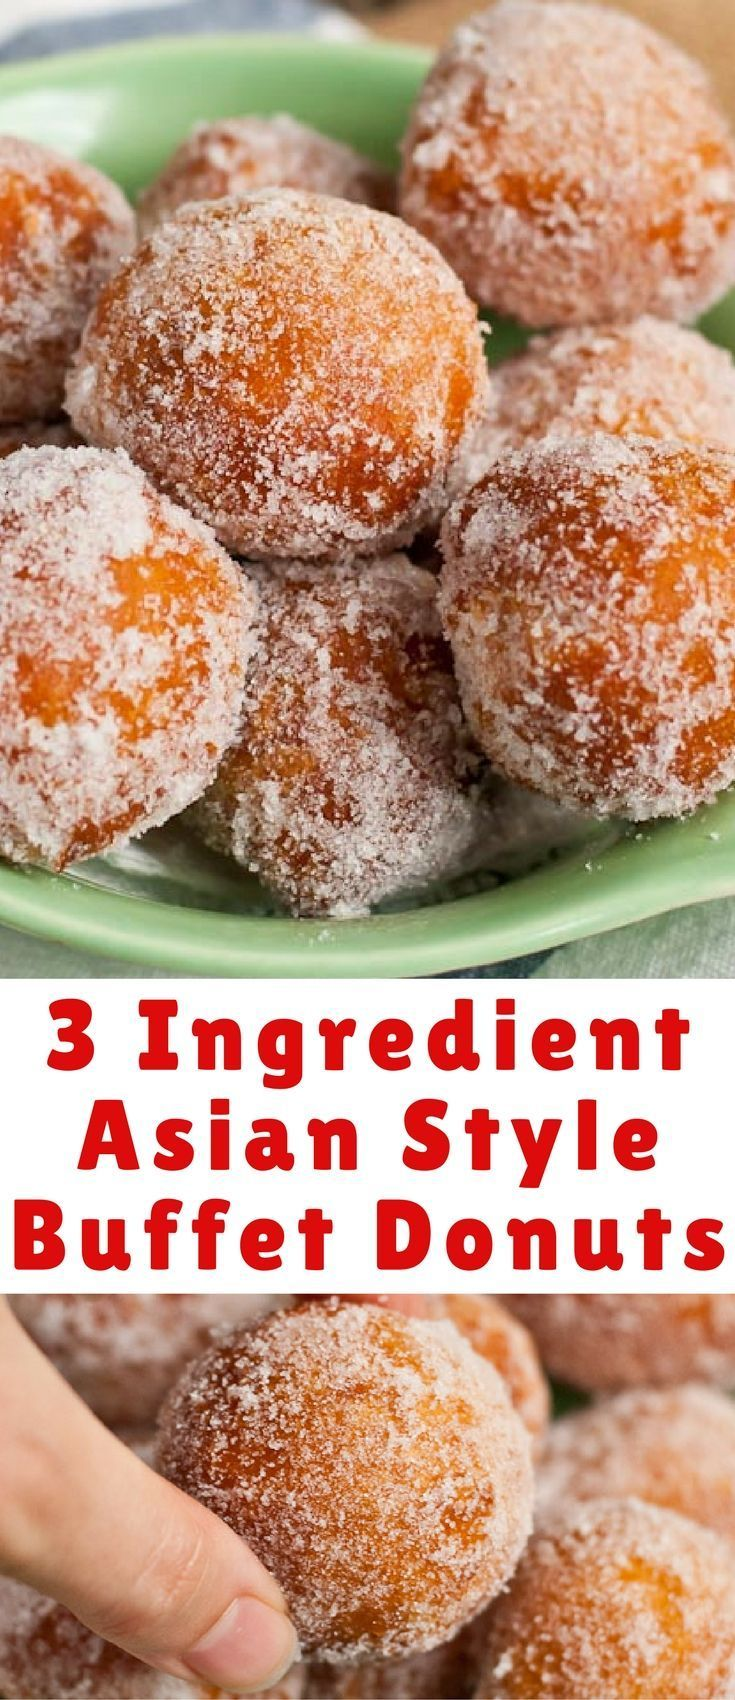 Just 3 ingredients is all you need to make these easy sugared Chinese donuts. They taste just like the ones you get at your favorite Asian buffet!